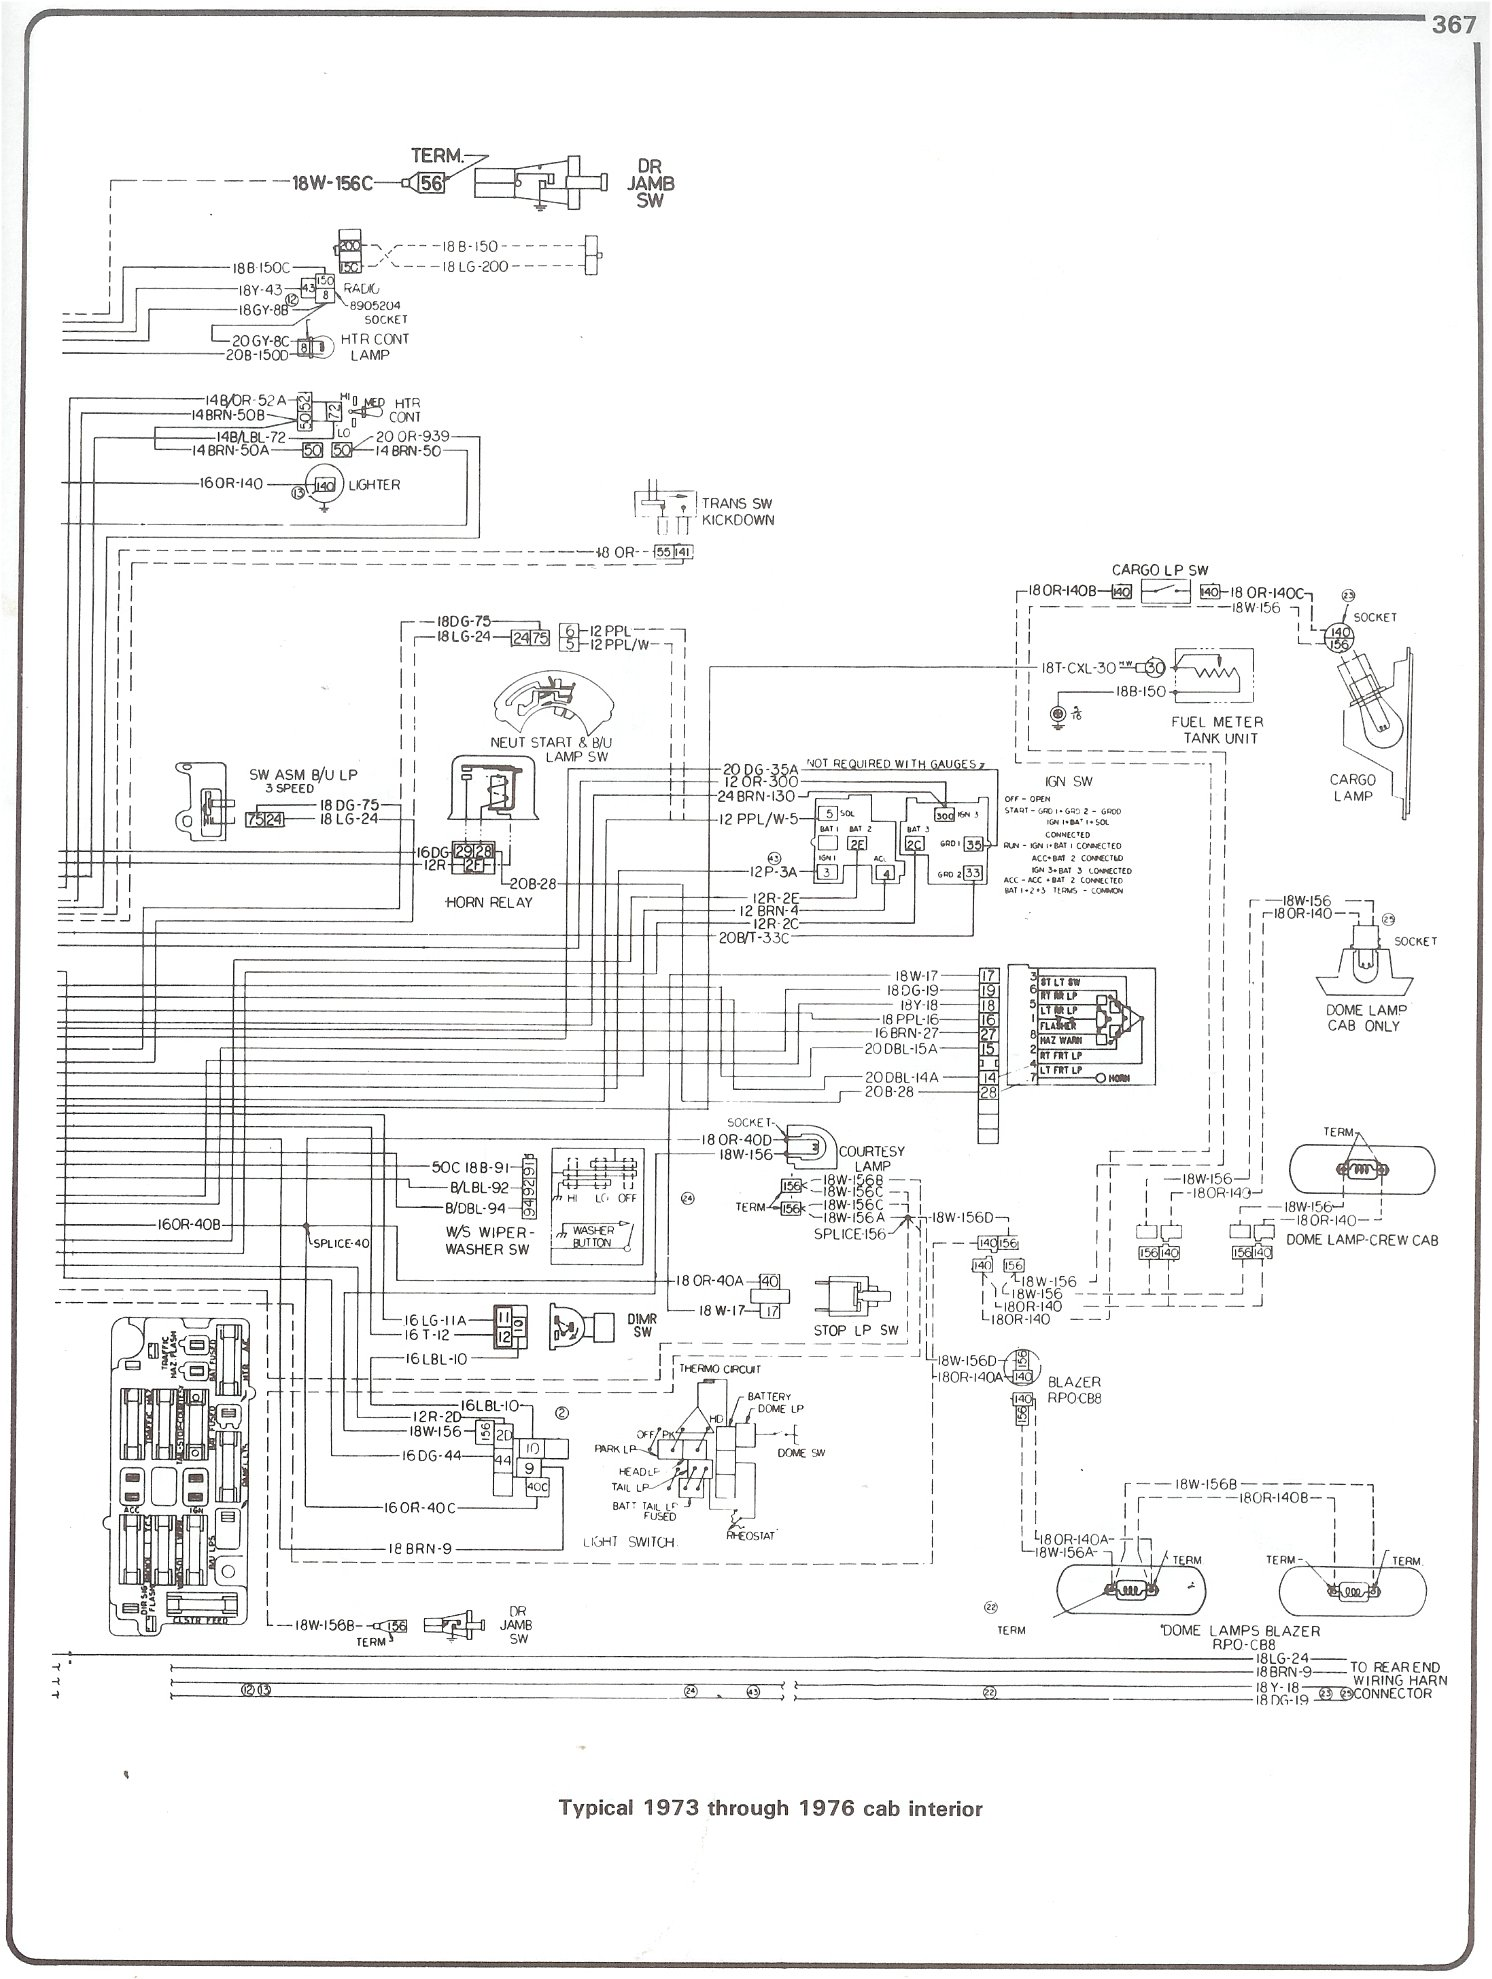 73 76_cab_inter 1973 chevy truck wiring diagram 1973 chevy truck oil cooler \u2022 free 1967 gmc pickup wiring diagram at gsmx.co